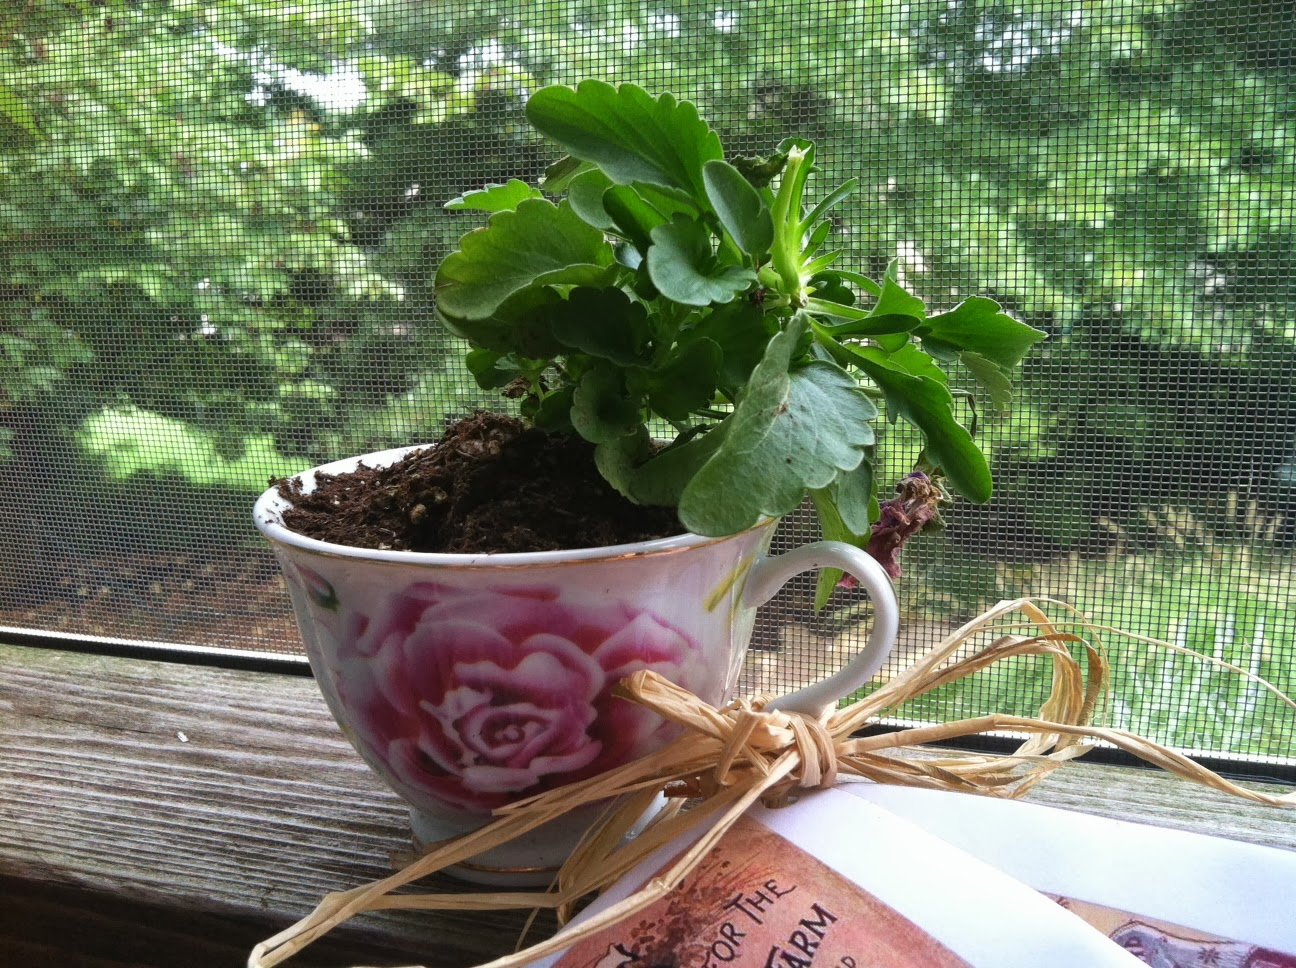 The College Cuisiner Diy Planted Teacup Favors And Seed Packets